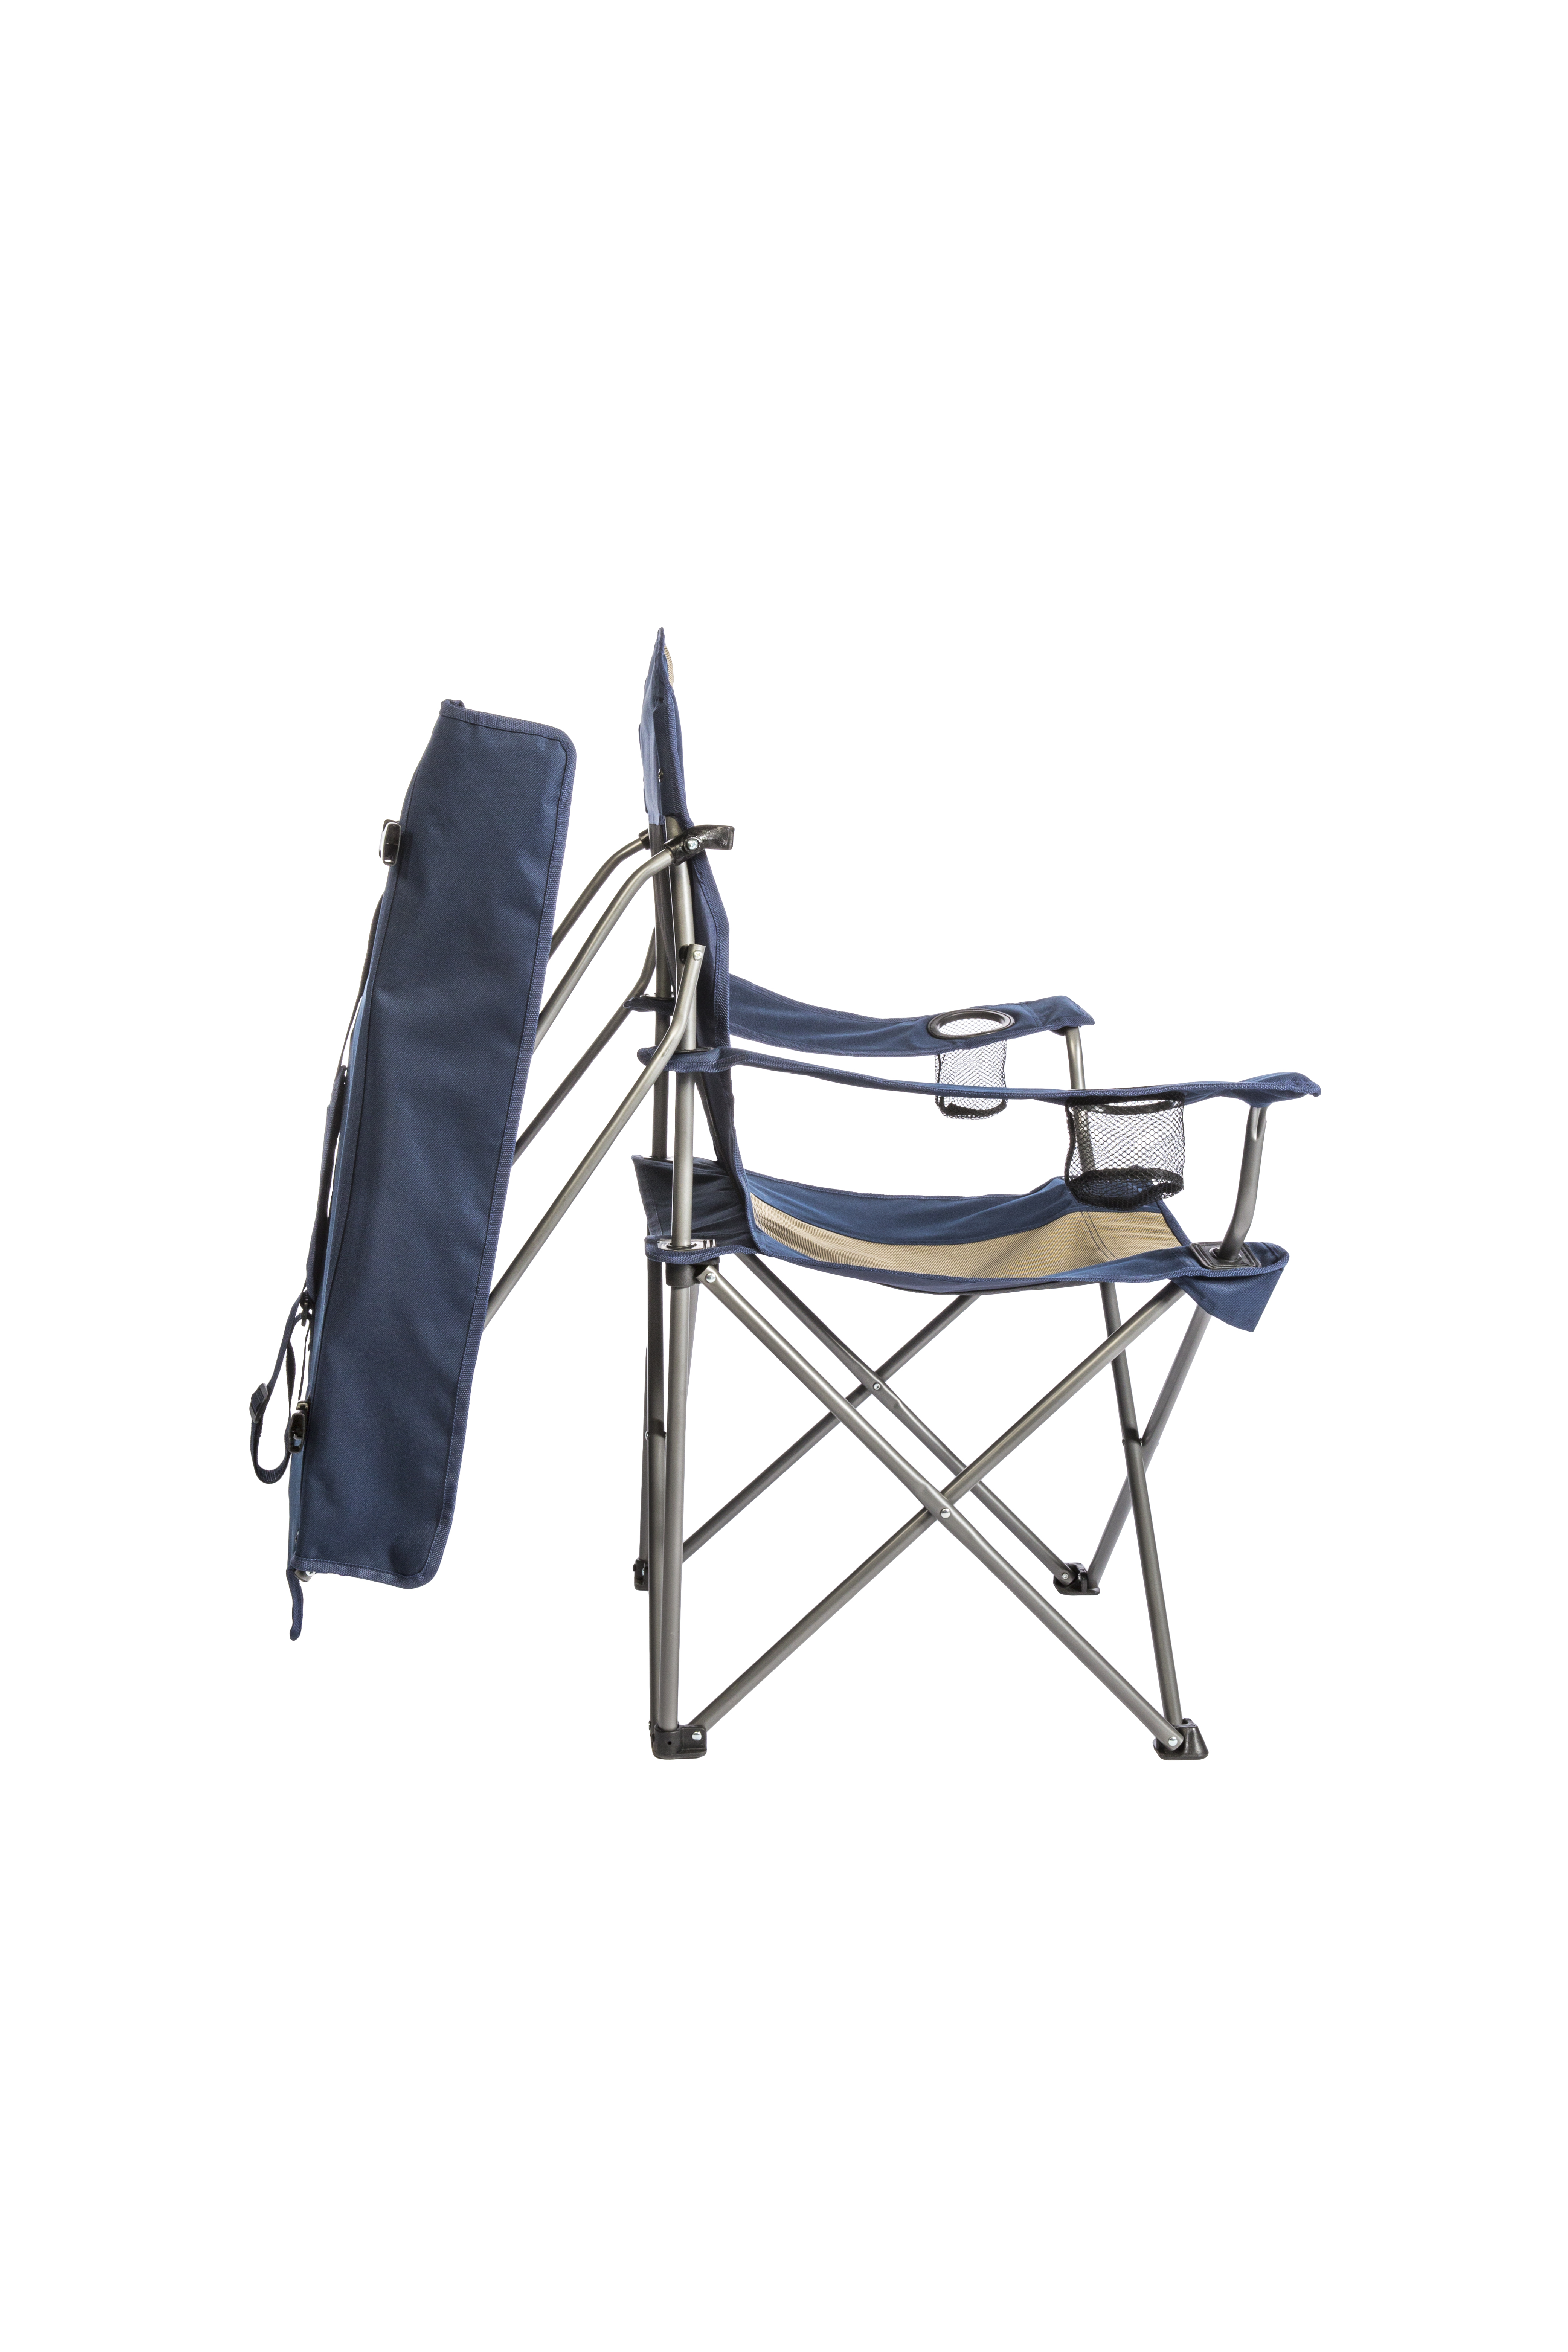 Kamp Rite® Chair With Shade Canopy